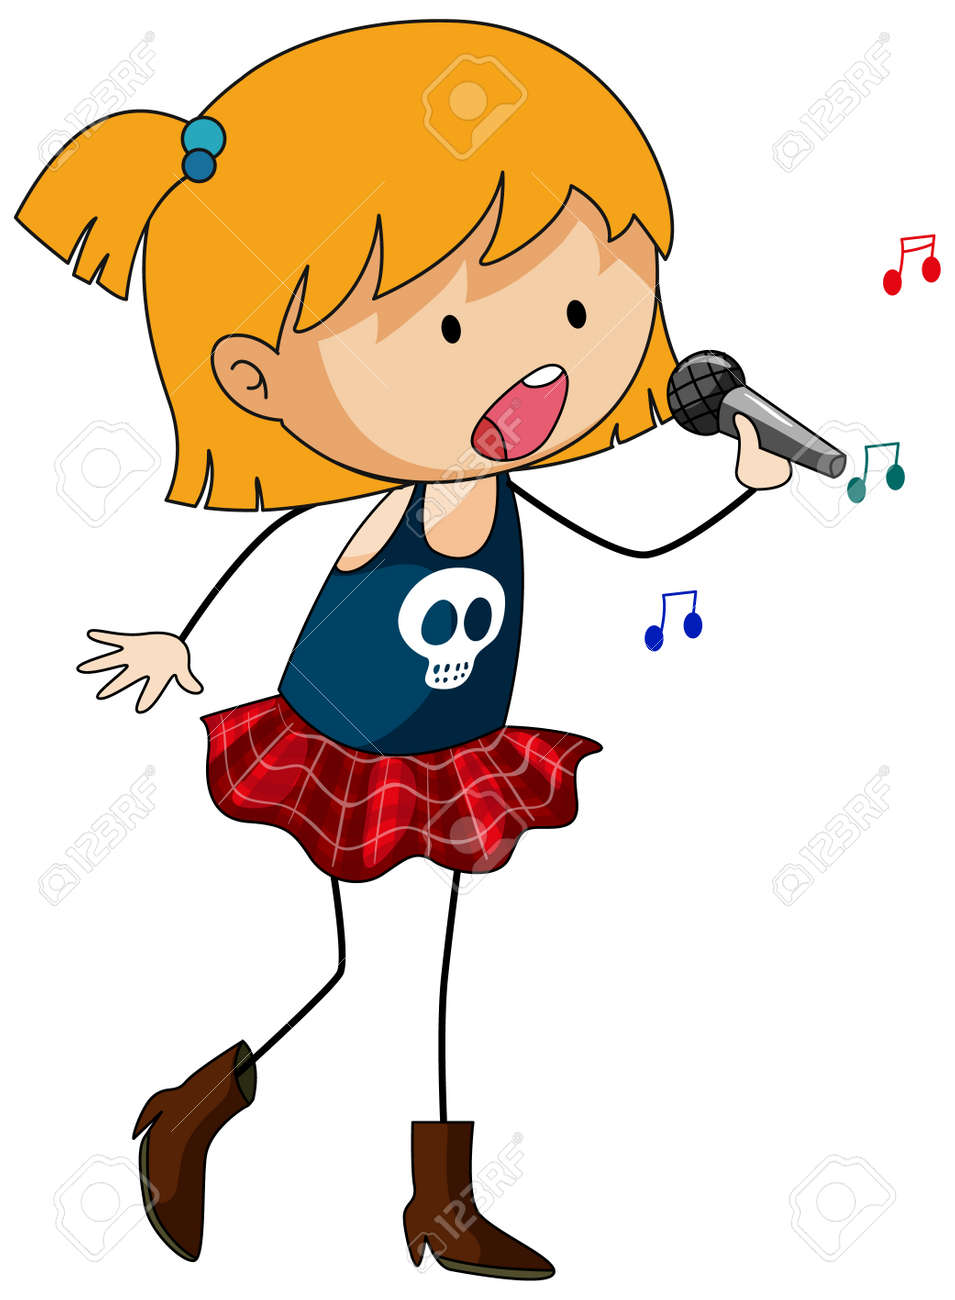 Singer girl's singing doodle cartoon character isolated illustration - 169327825